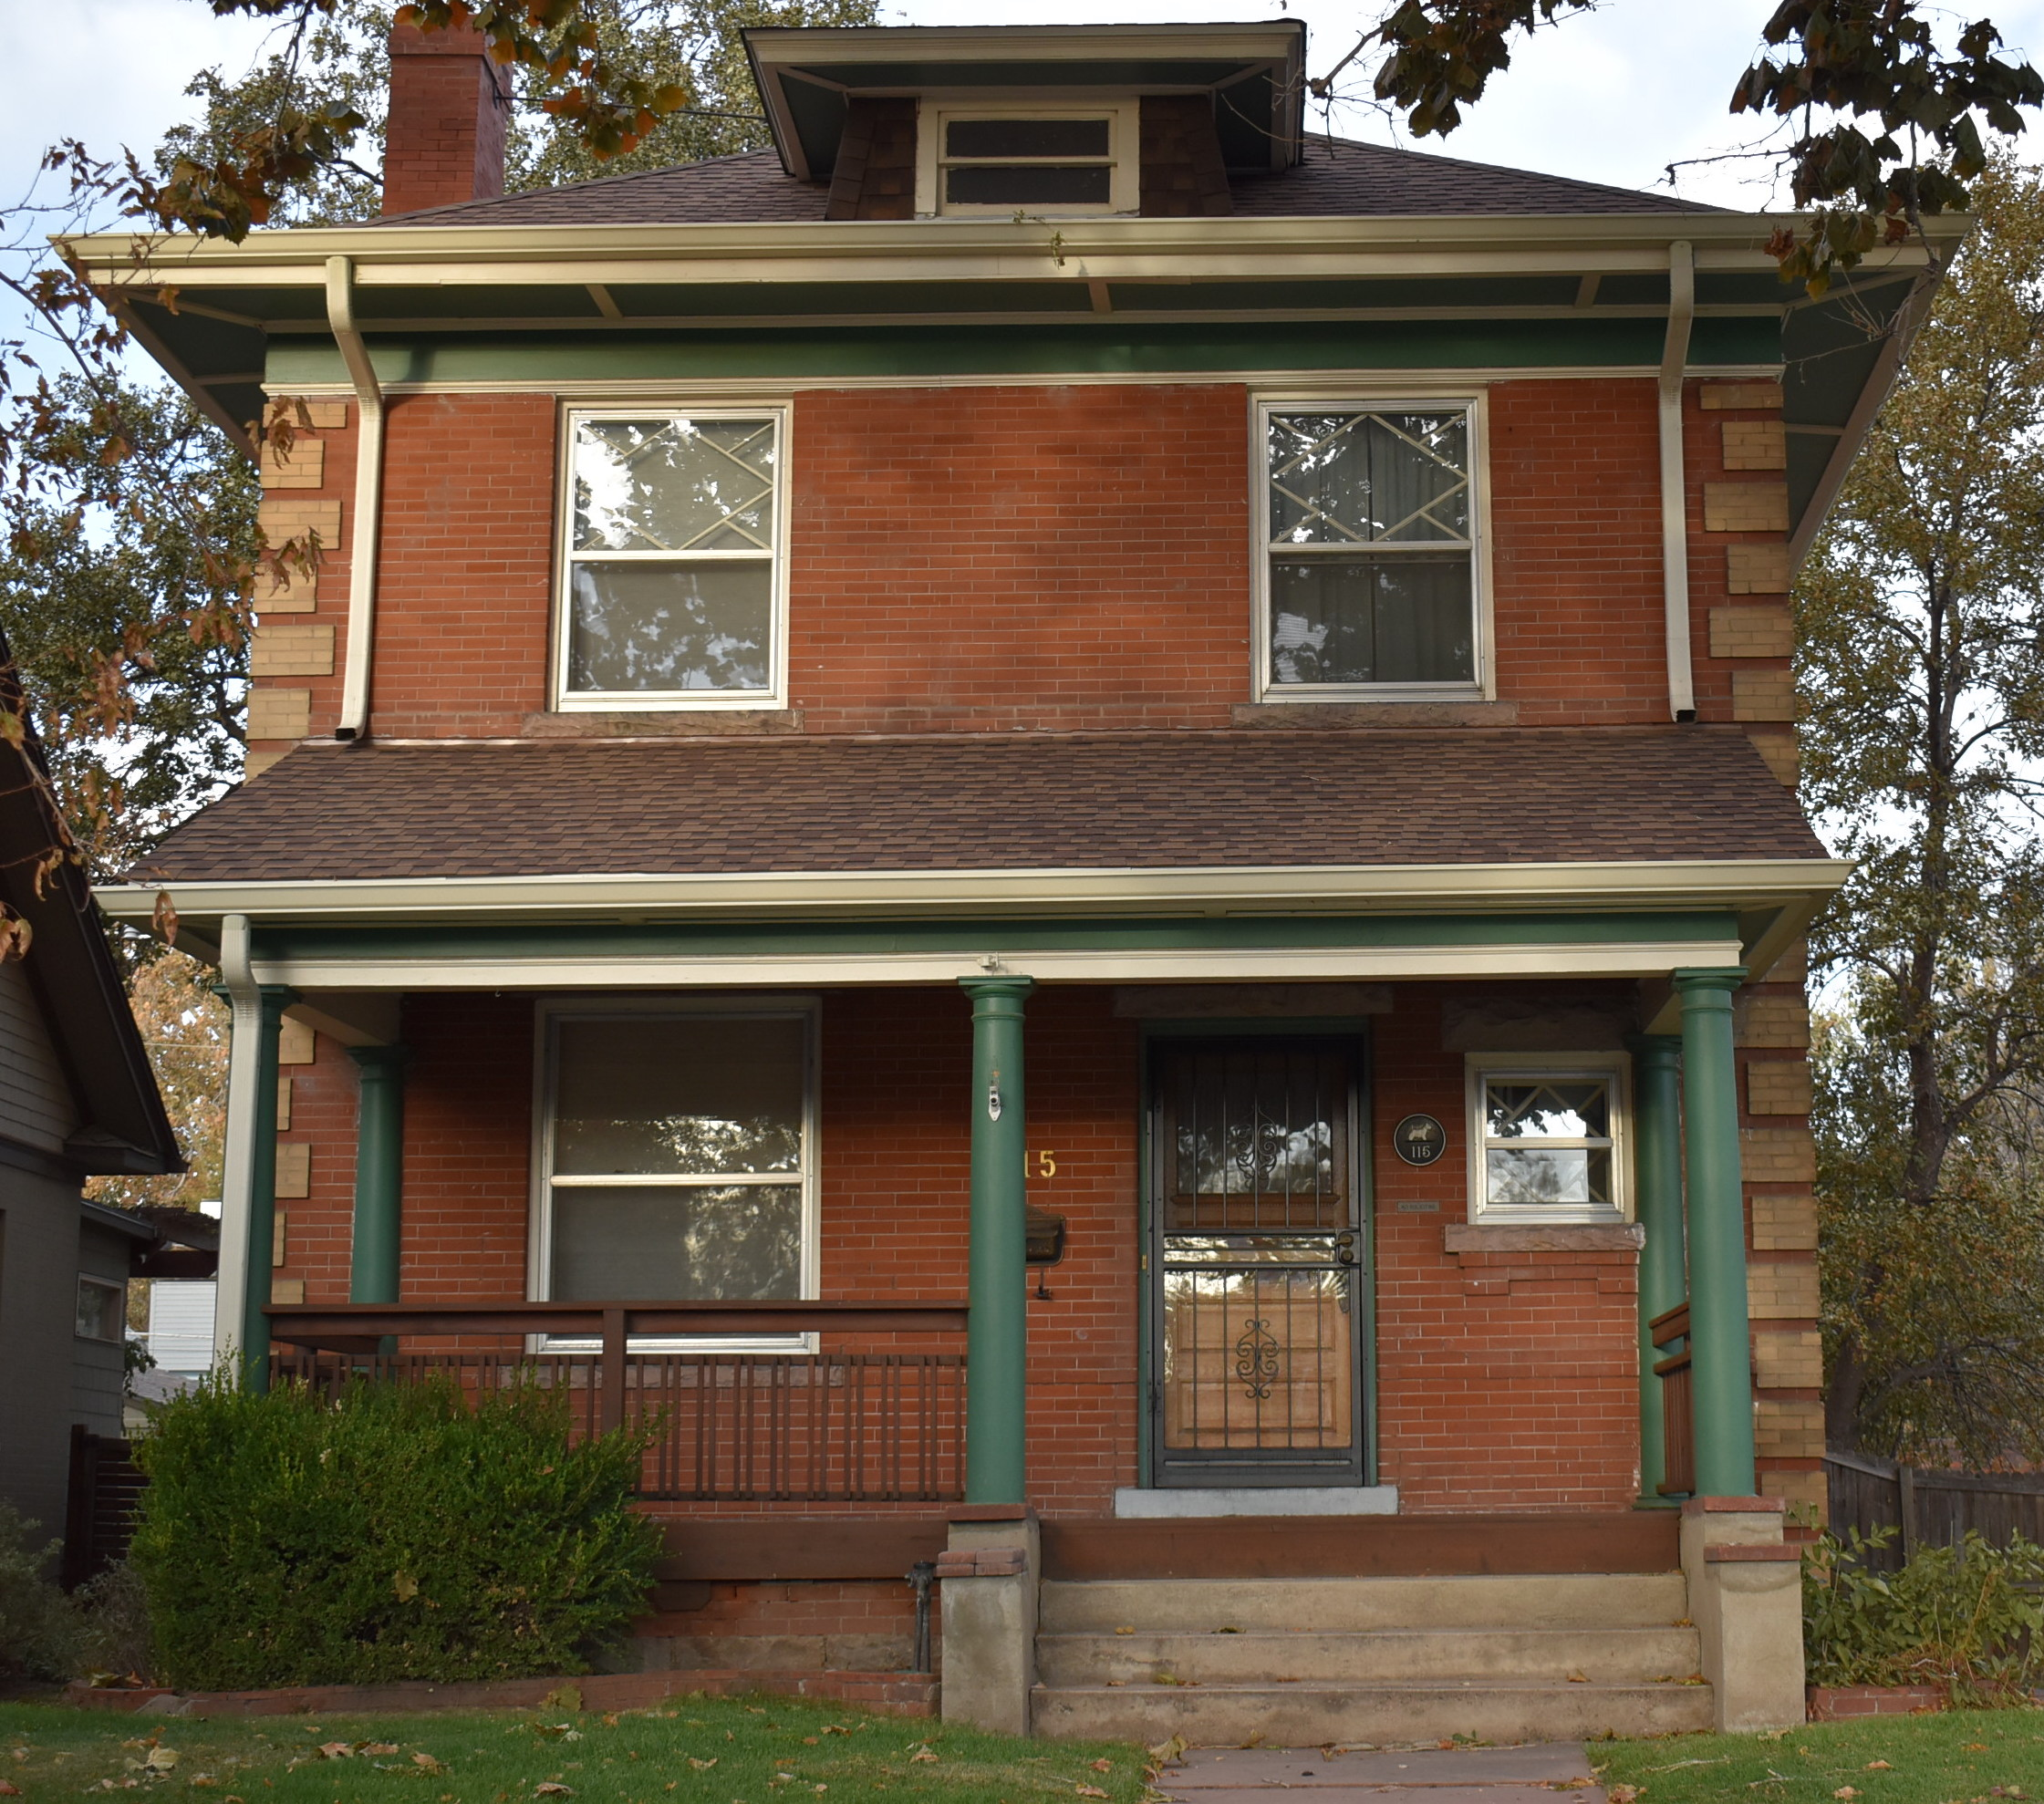 typical Denver Square house